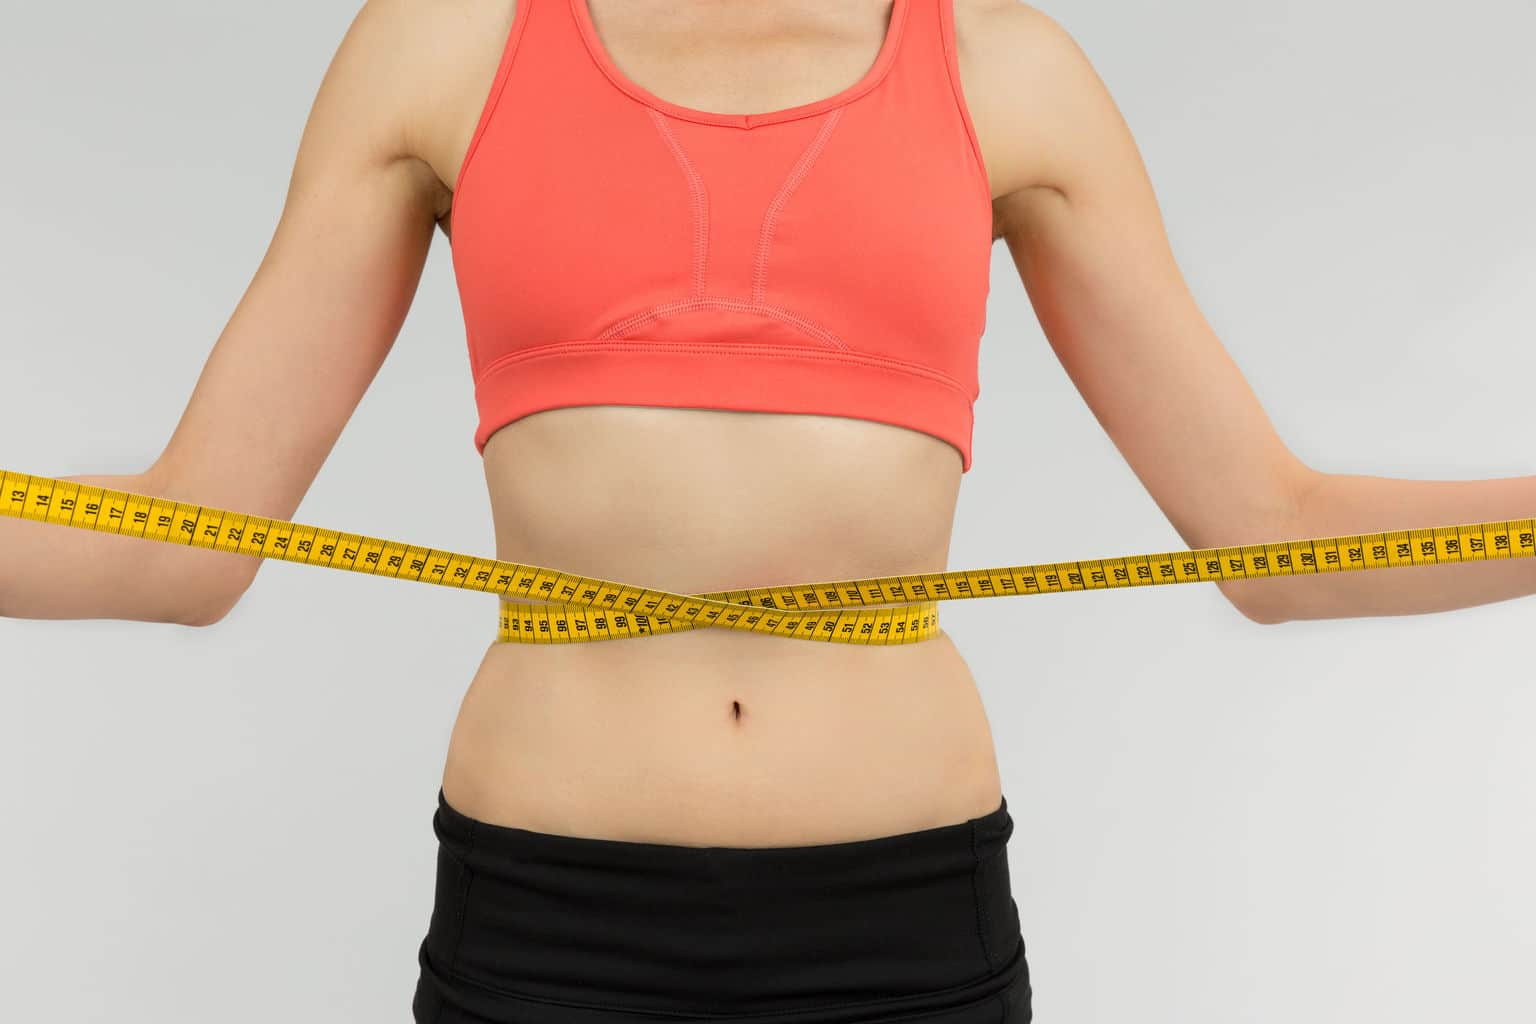 Is weight loss good for you?